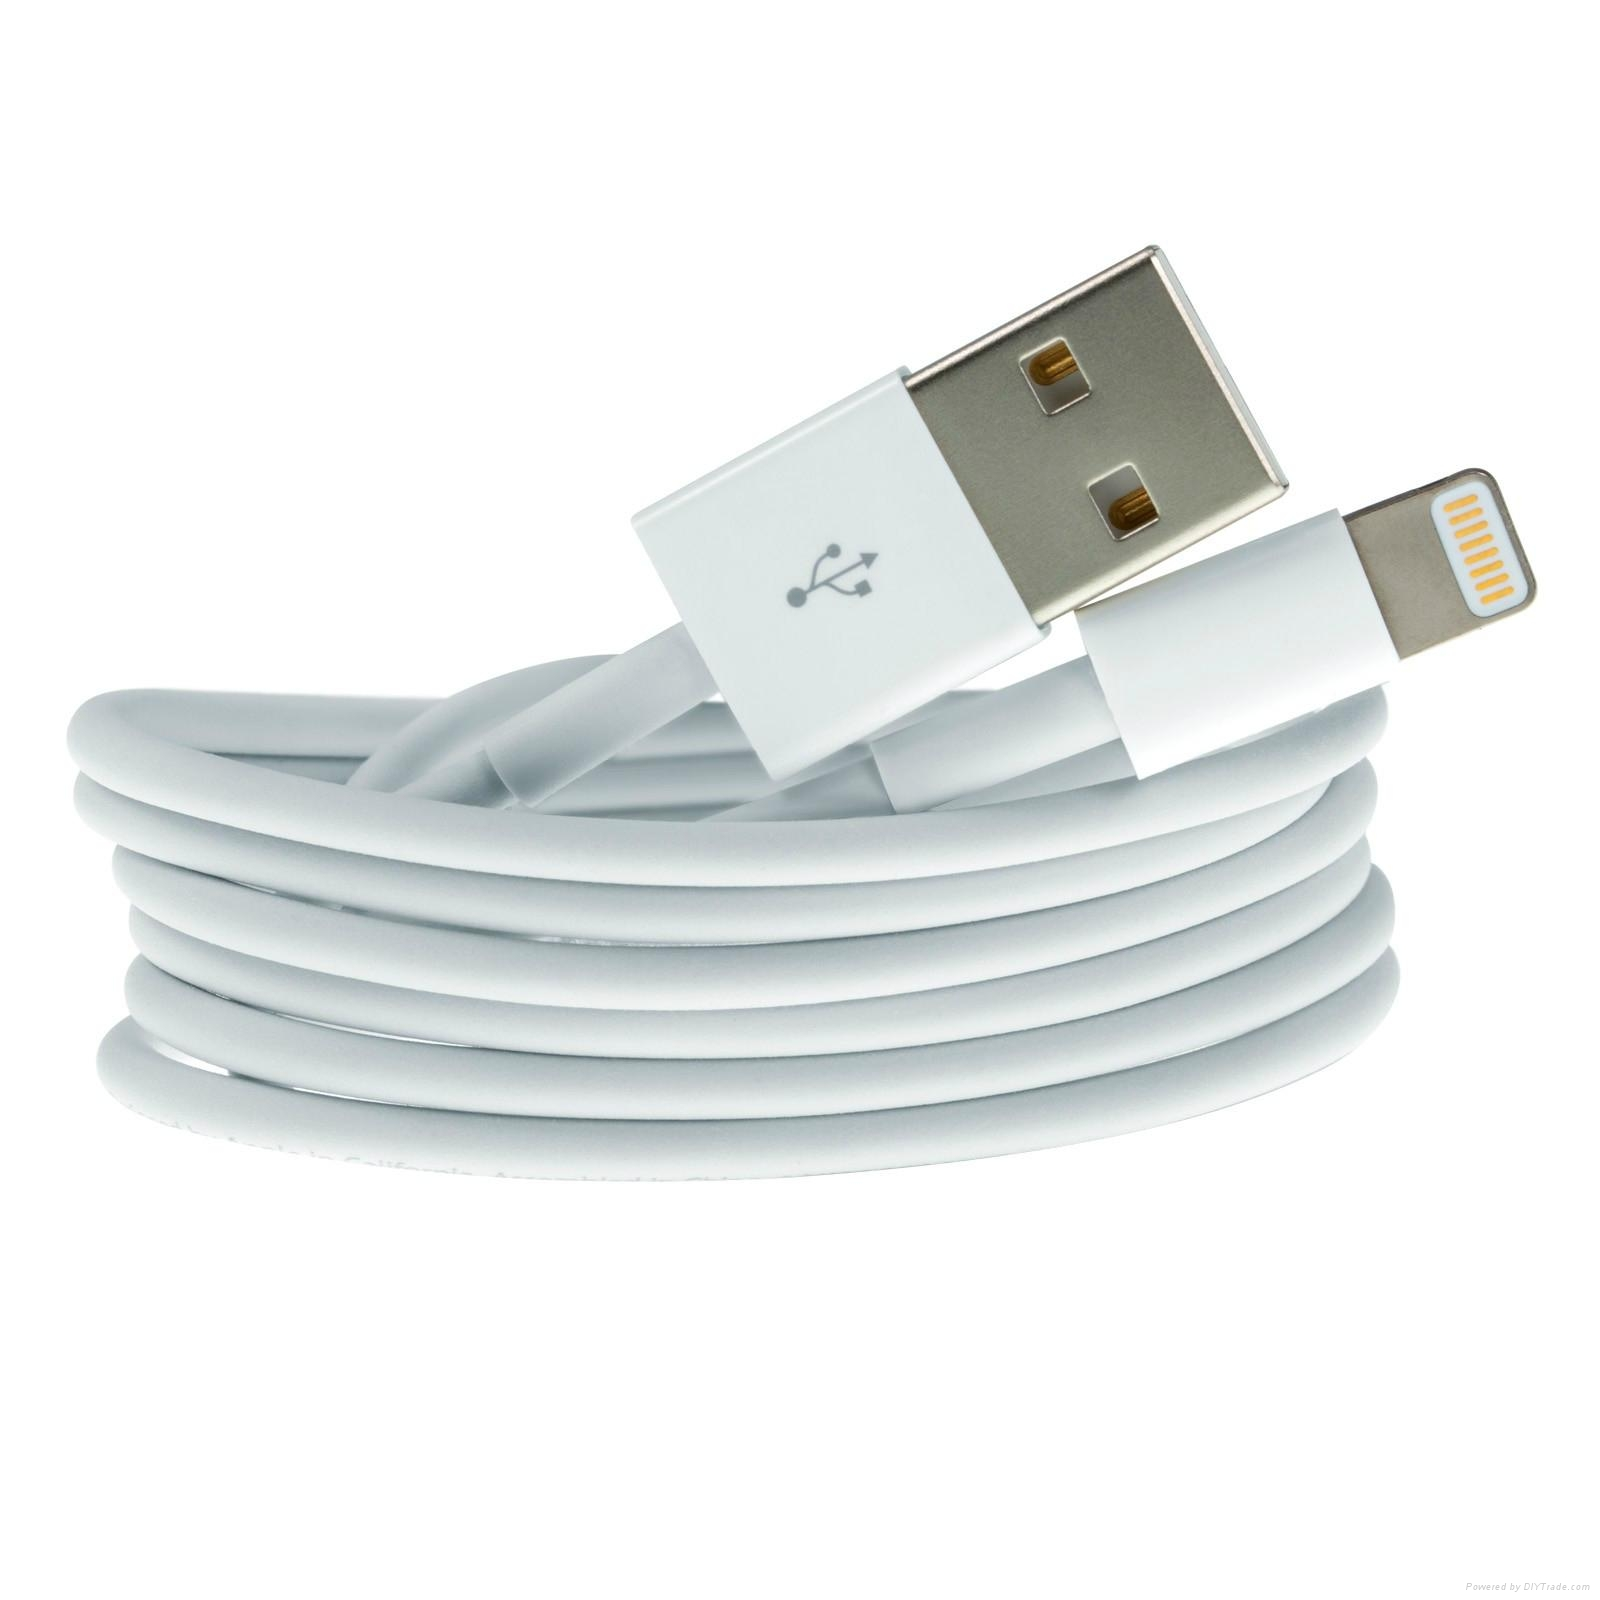 original official apple iphone 5 5s 5c lightning usb charger data cable white md818zm a. Black Bedroom Furniture Sets. Home Design Ideas